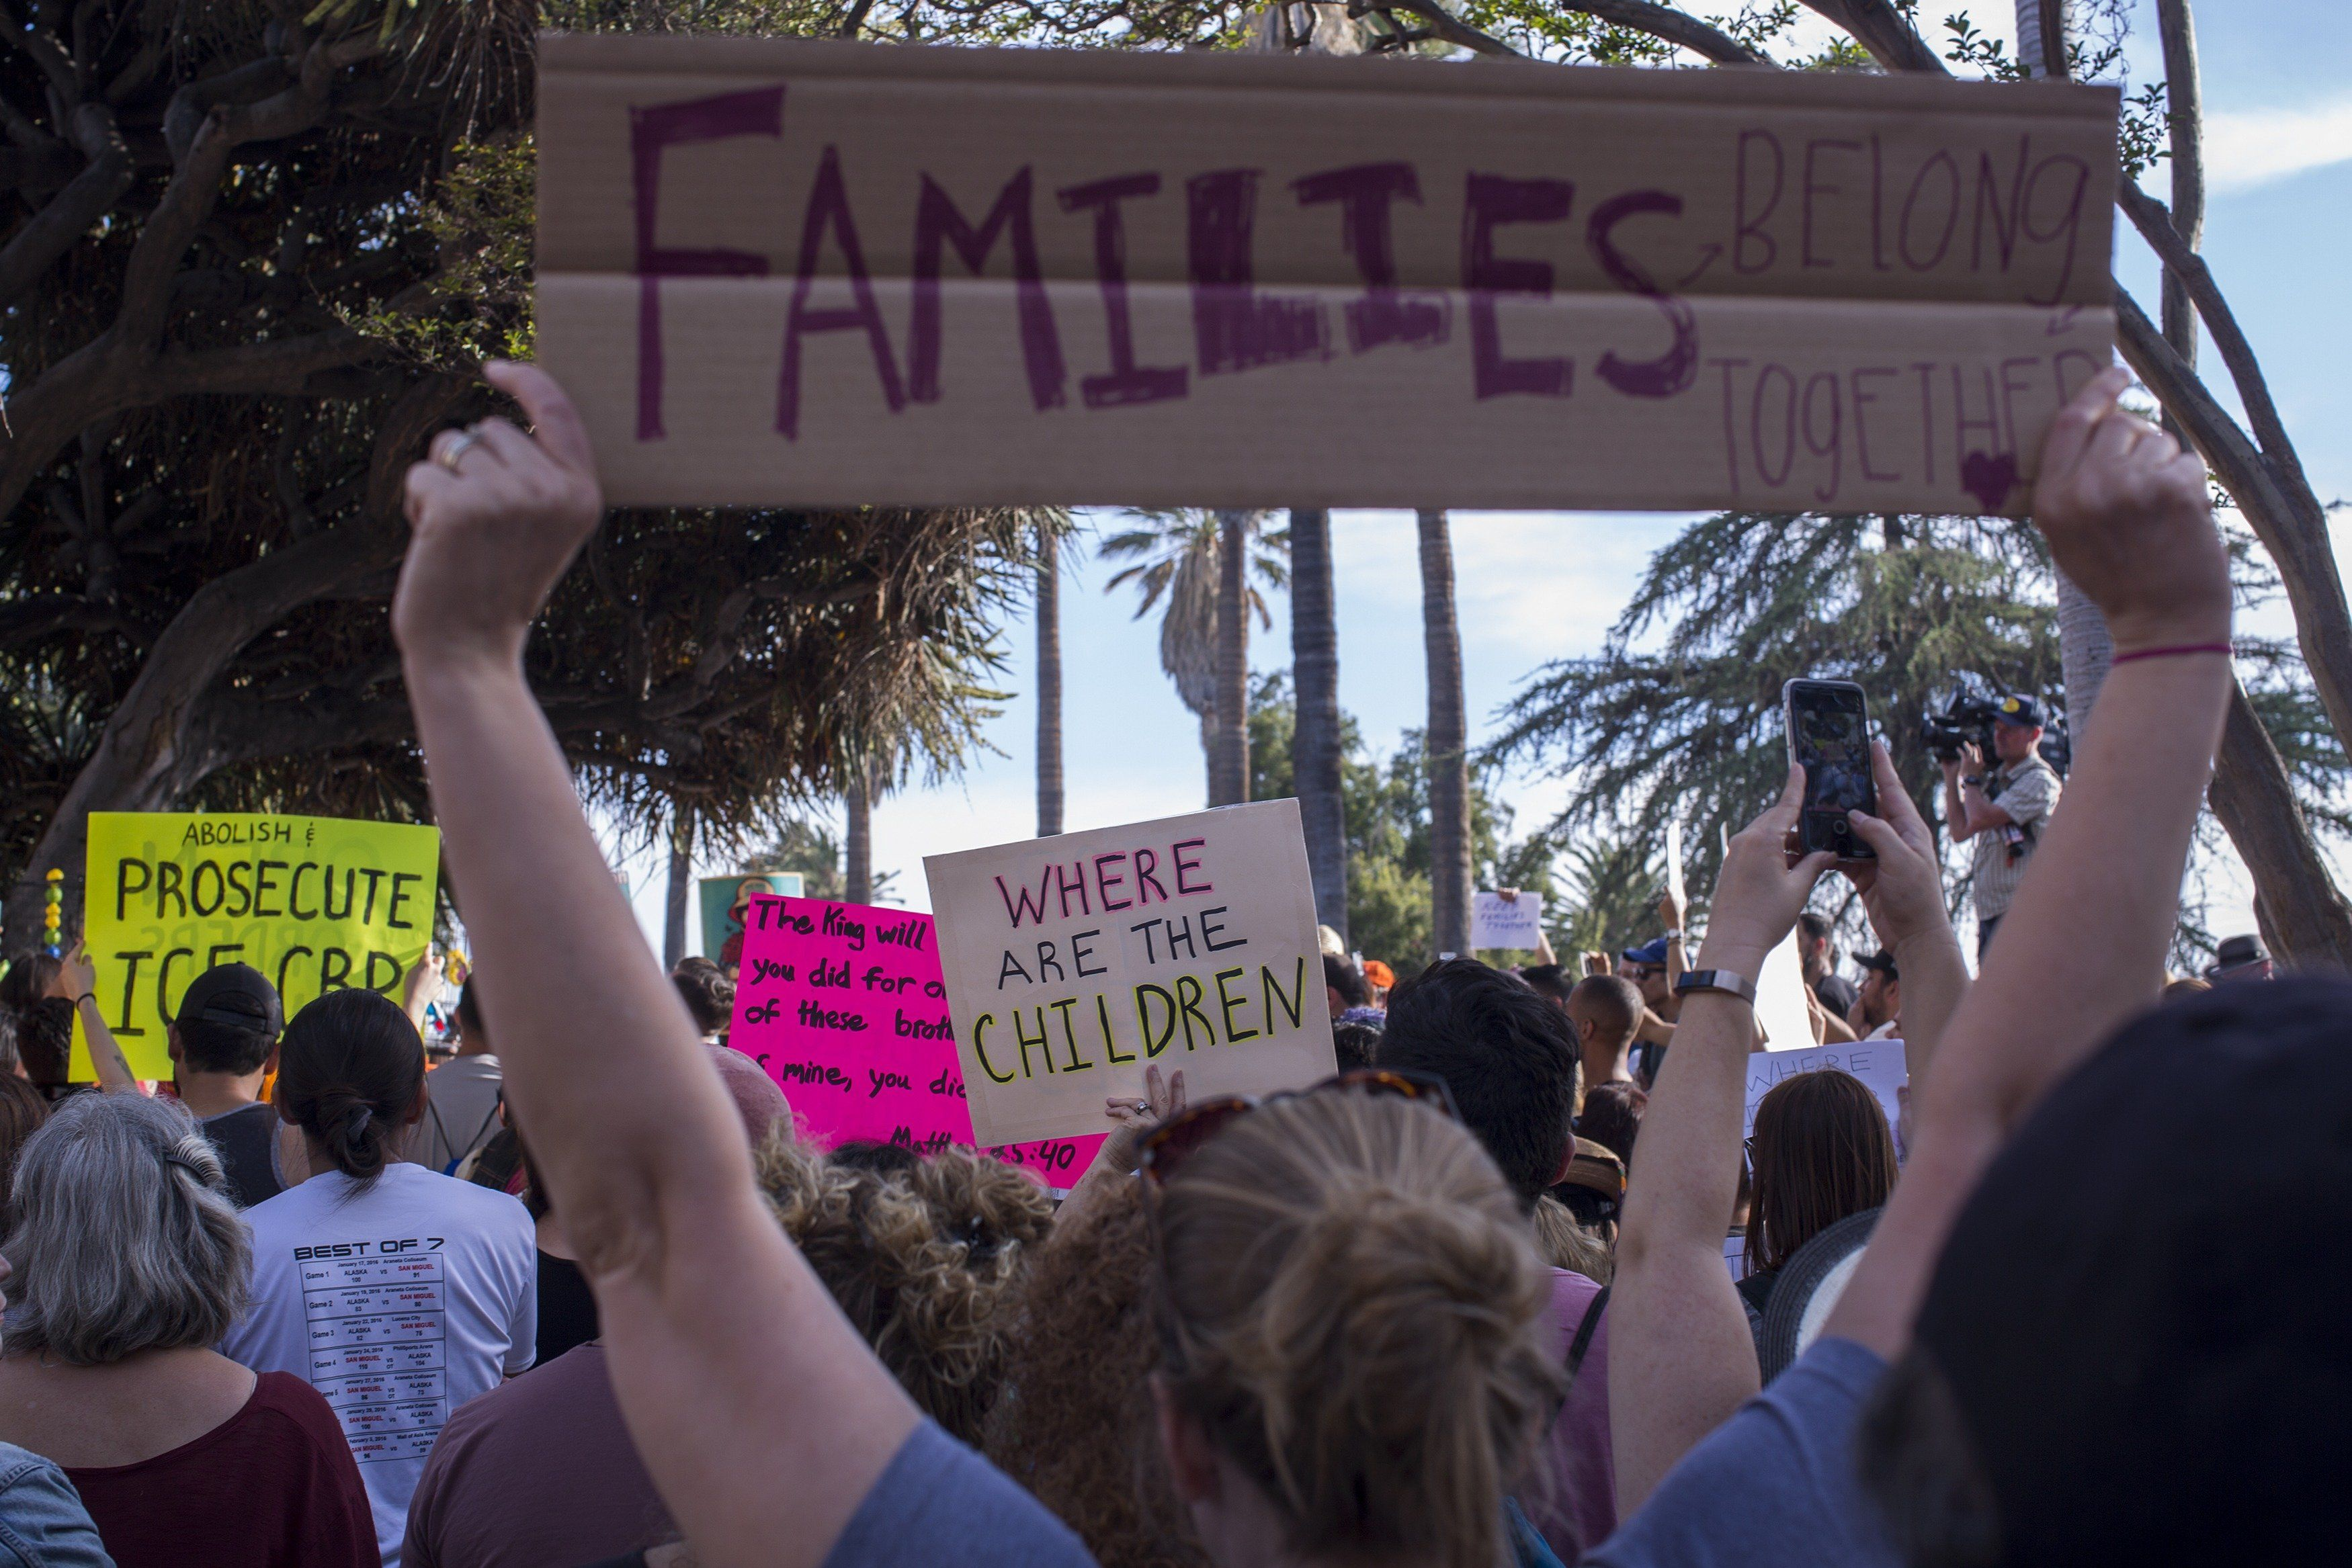 LOS ANGELES, CA - JUNE 14: People protest the Trump administration policy of removing children from parents arrested for illegally crossing the U.S.-Mexico border on June 14, 2018 in Los Angeles, California. Demonstrators marched through the city and culminated the march at a detention center where ICE (U.S.Immigration and Customs Enforcement) detainees are held. U.S. Immigration and Customs Enforcement recently arrested 162 undocumented immigrants during a three-day operation in Los Angeles and surrounding areas.  (Photo by David McNew/Getty Images)